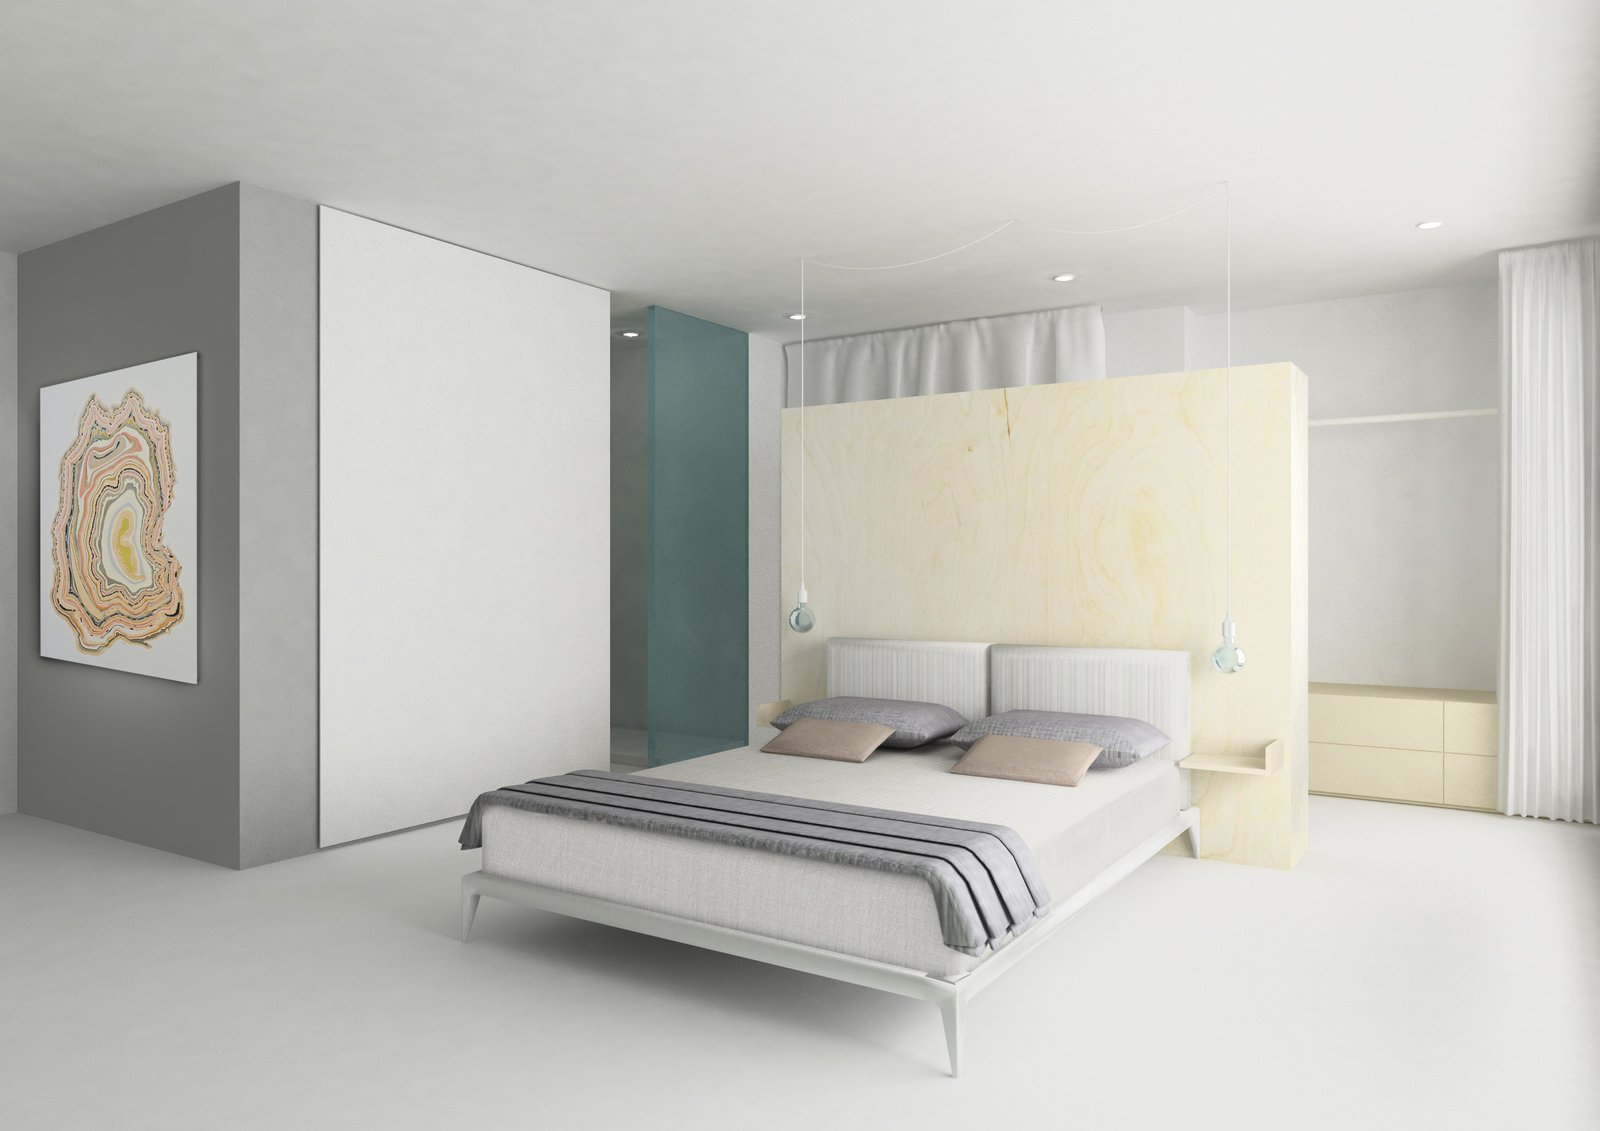 The bedroom of a private residence by Herrenknecht in Zurich.  127+ Inspiring Interior Ideas from The Globetrotting Designer That Takes on Challenges of All Scales